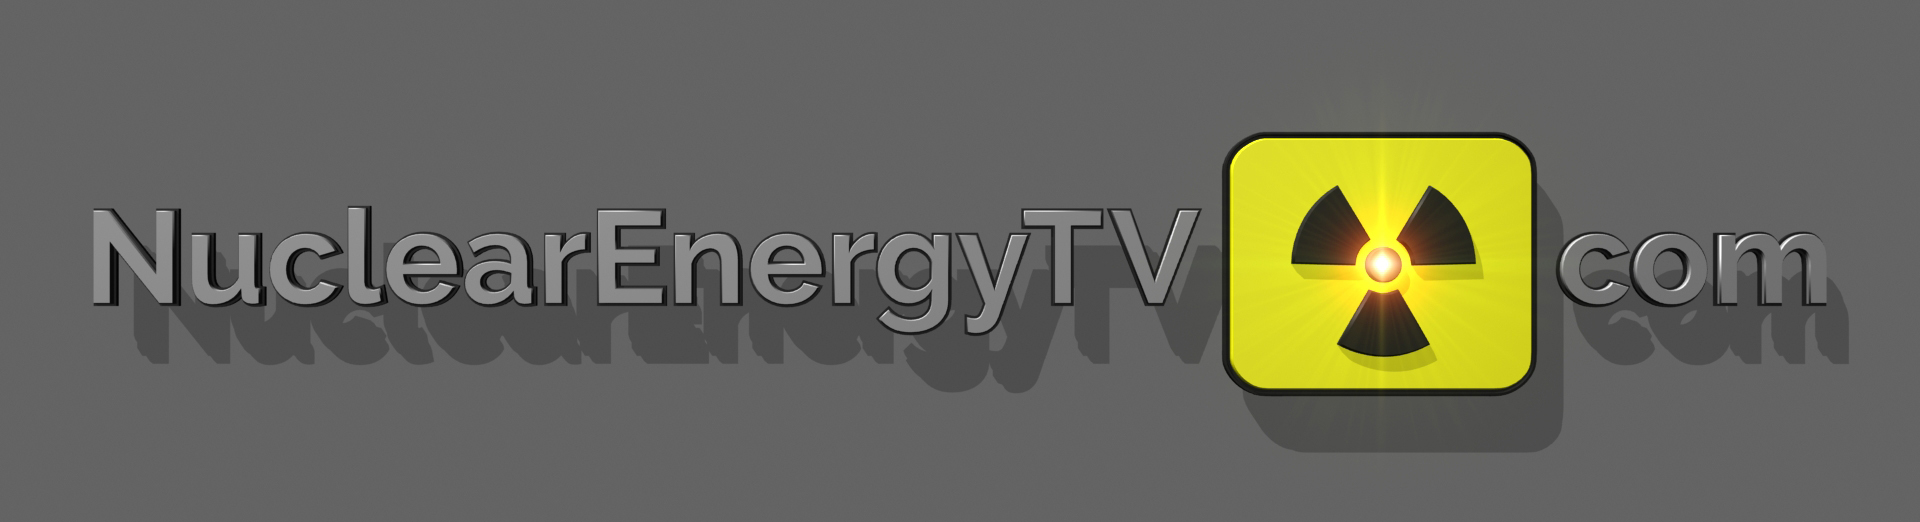 Nuclear Engergy TV